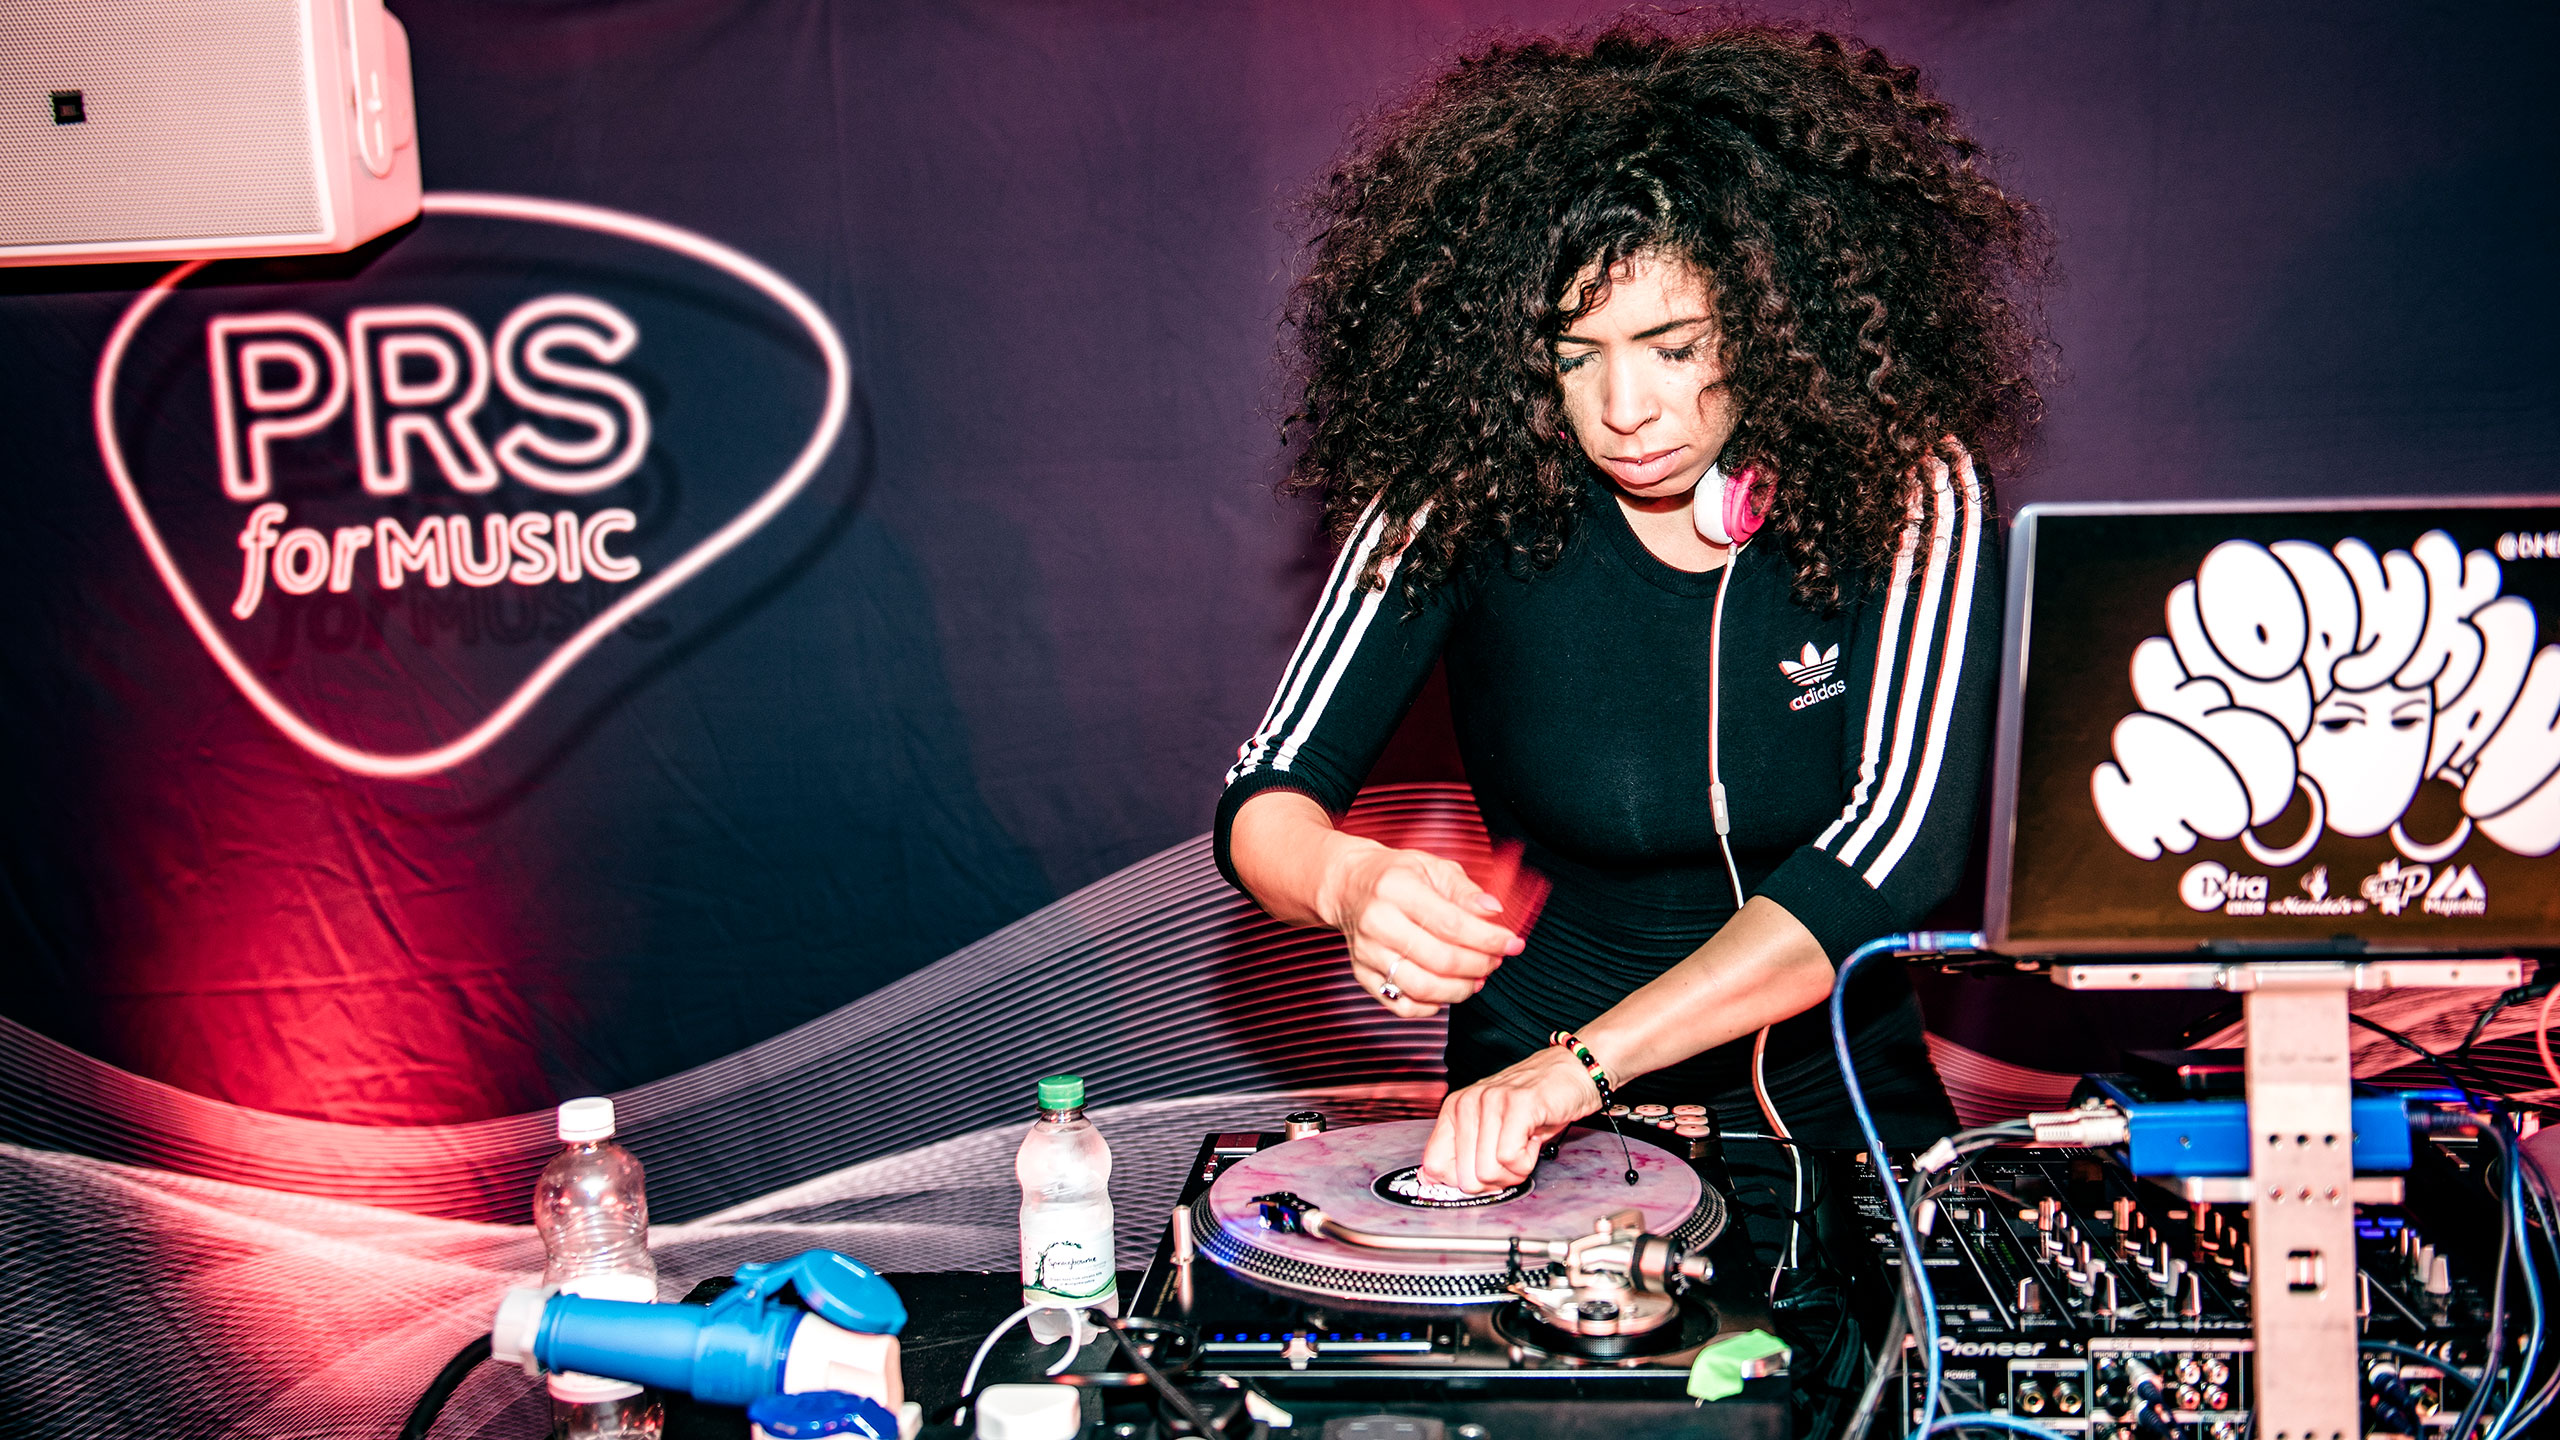 Melody Kane DJing on vinyl decks at PRS for Music Presents